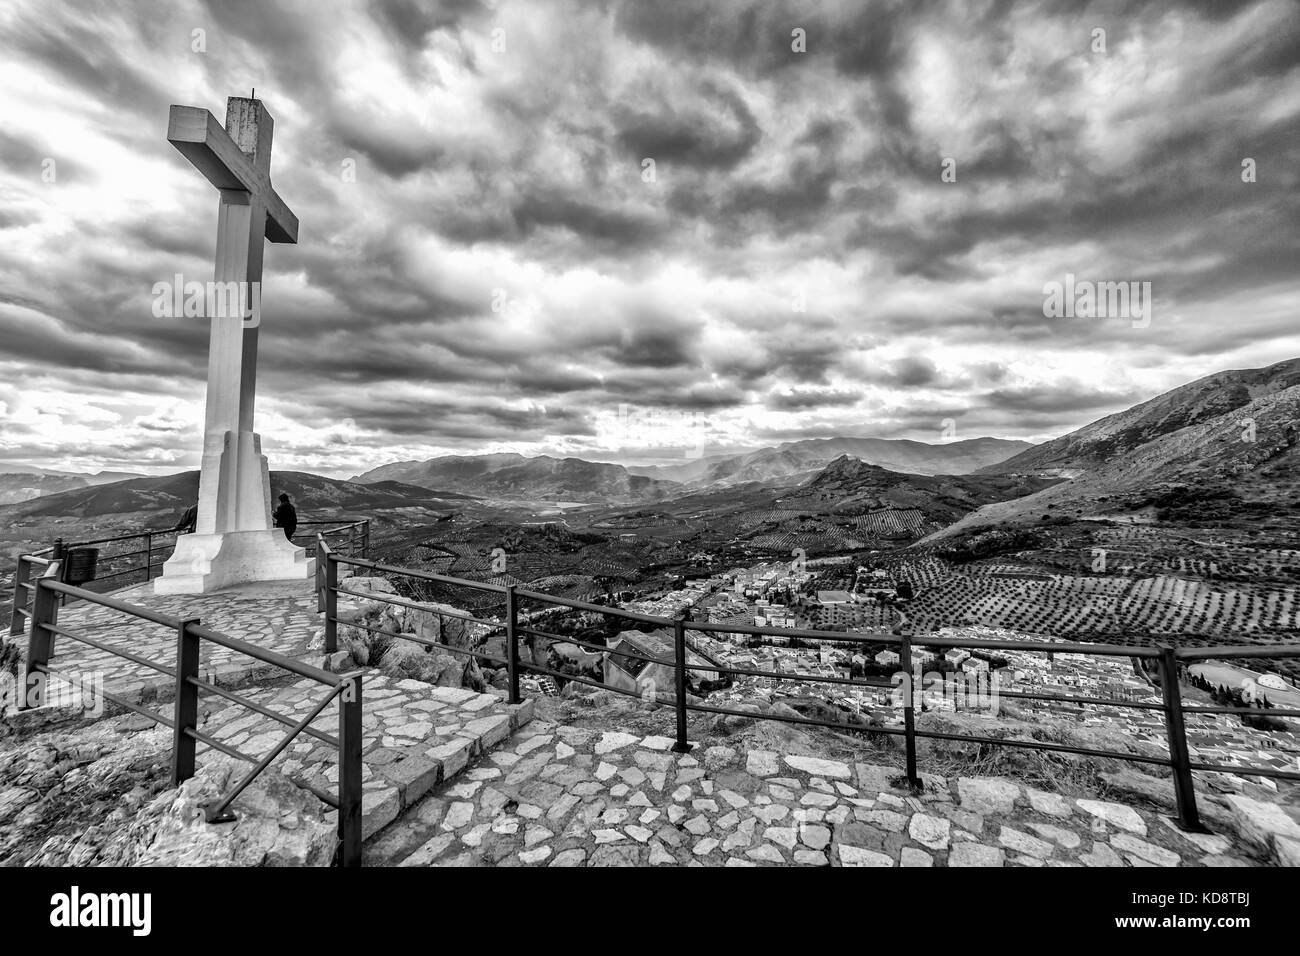 Landmark of walkway towards great crucifix in Santa Catalina or St Catherine mountain, public monument and lookout - Stock Image